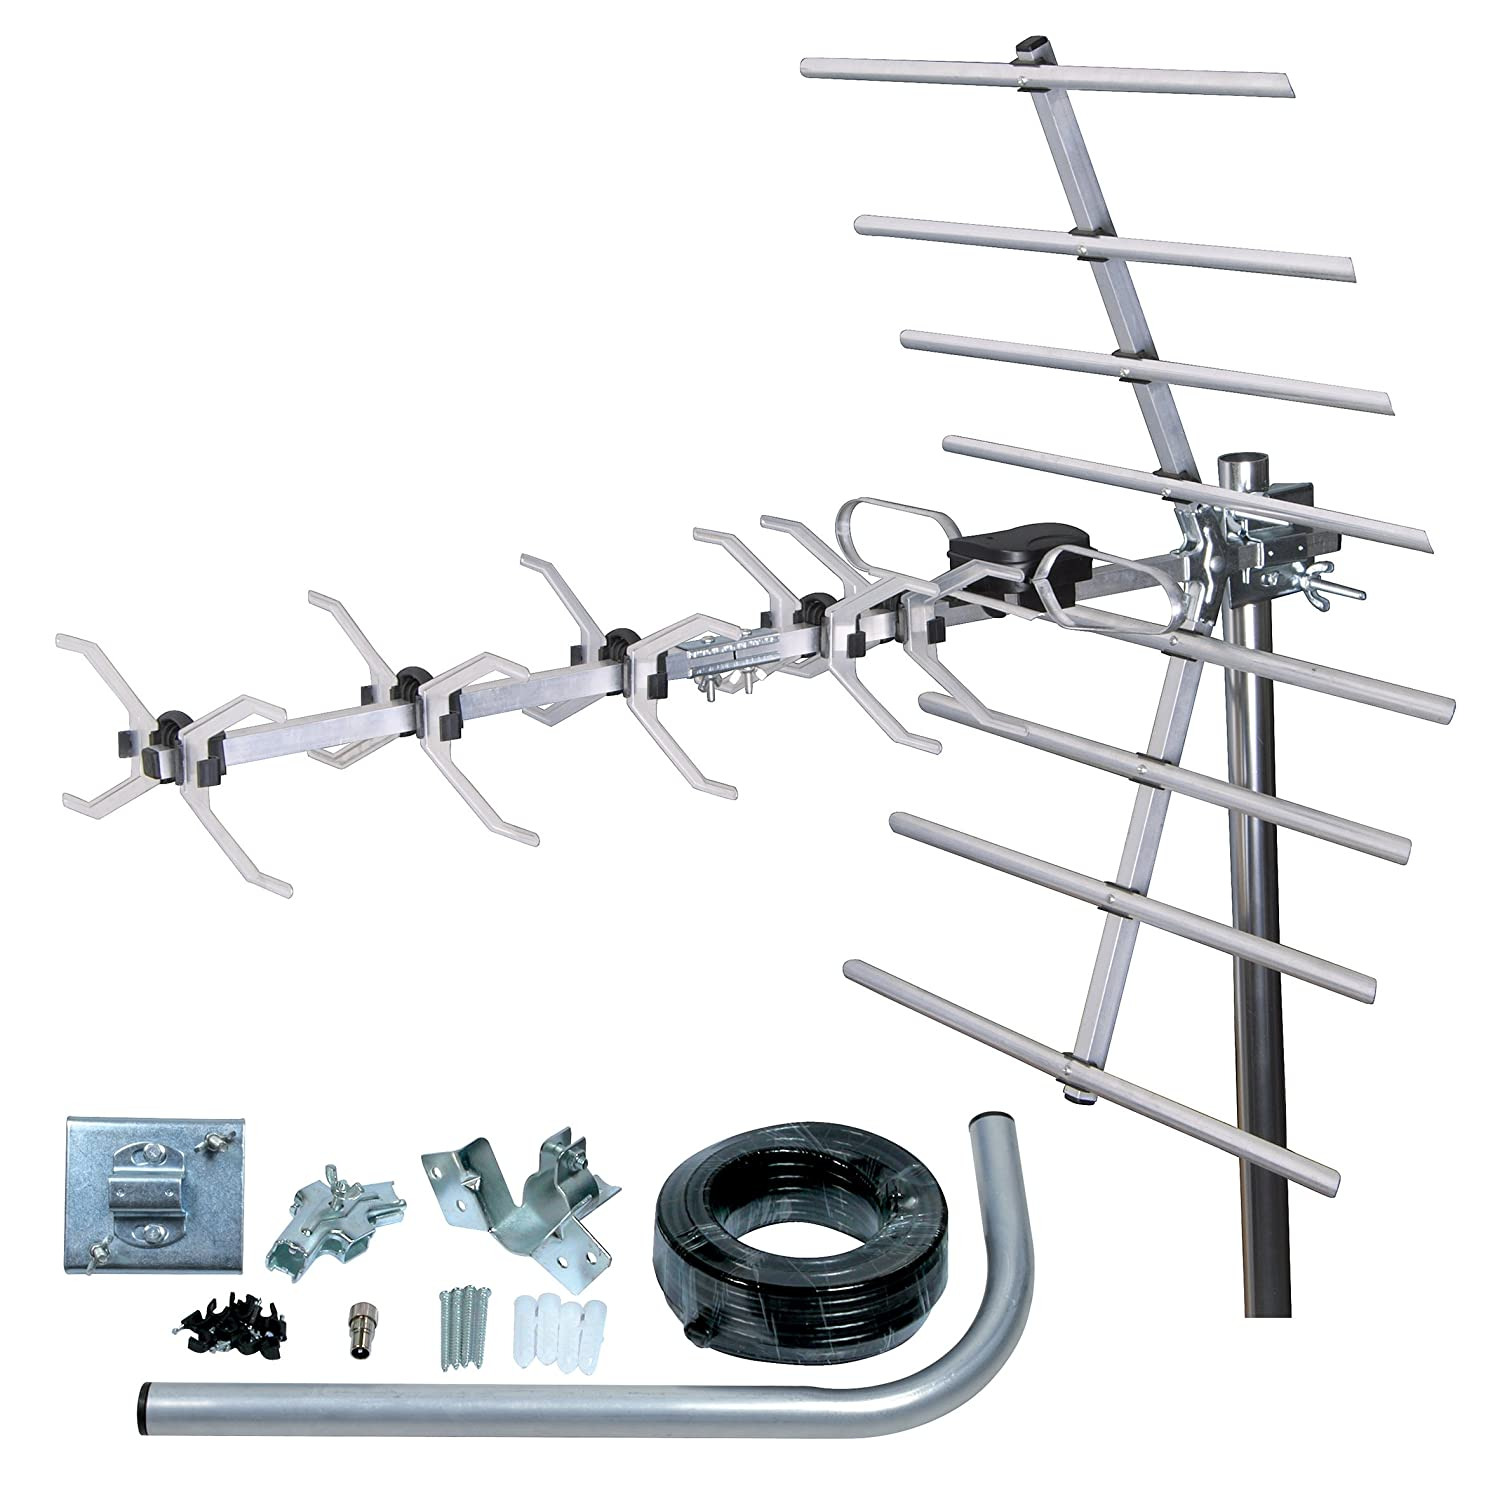 loft and long range Outdoor TV Antenna